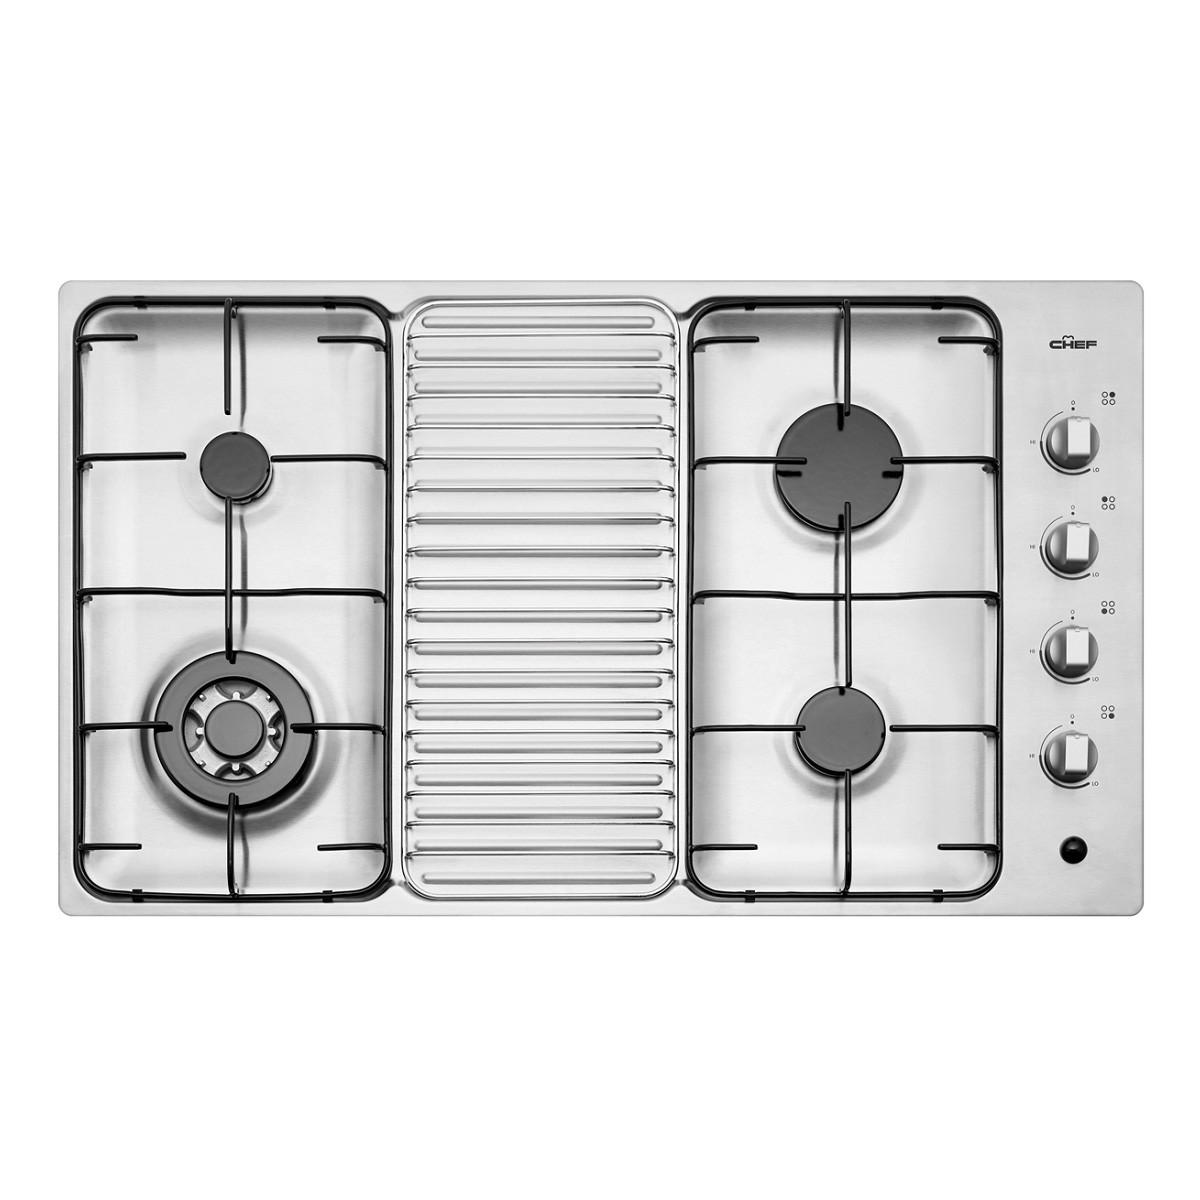 Chef Gas Cooktop GHS917S